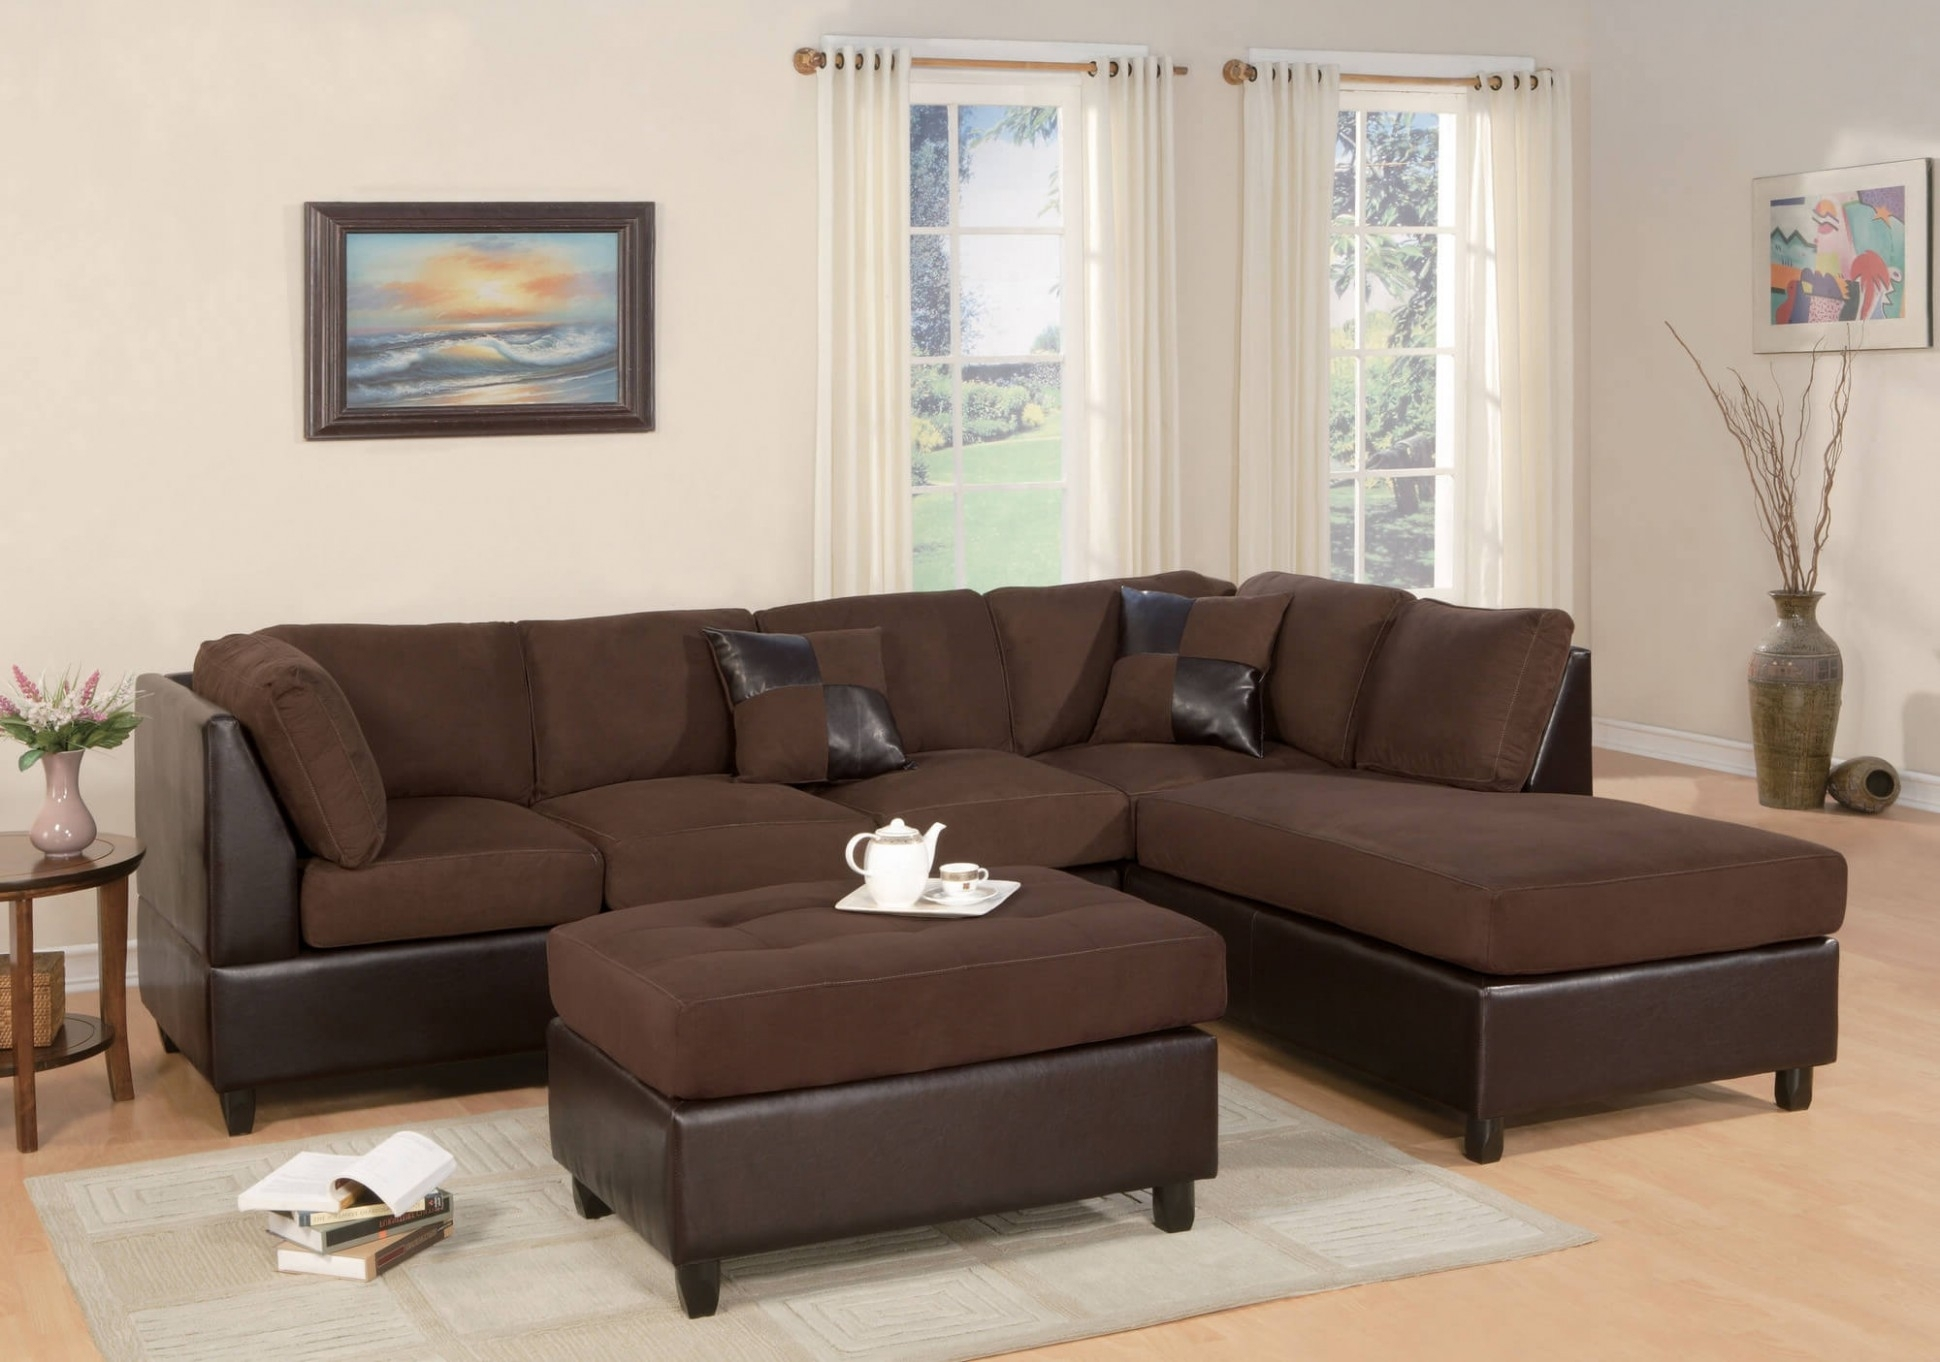 Sectional Sofa : Modern Sofa Bed Discount Sectional Sofas Pb Comfort inside Sectional Sofas At Chicago (Image 10 of 15)